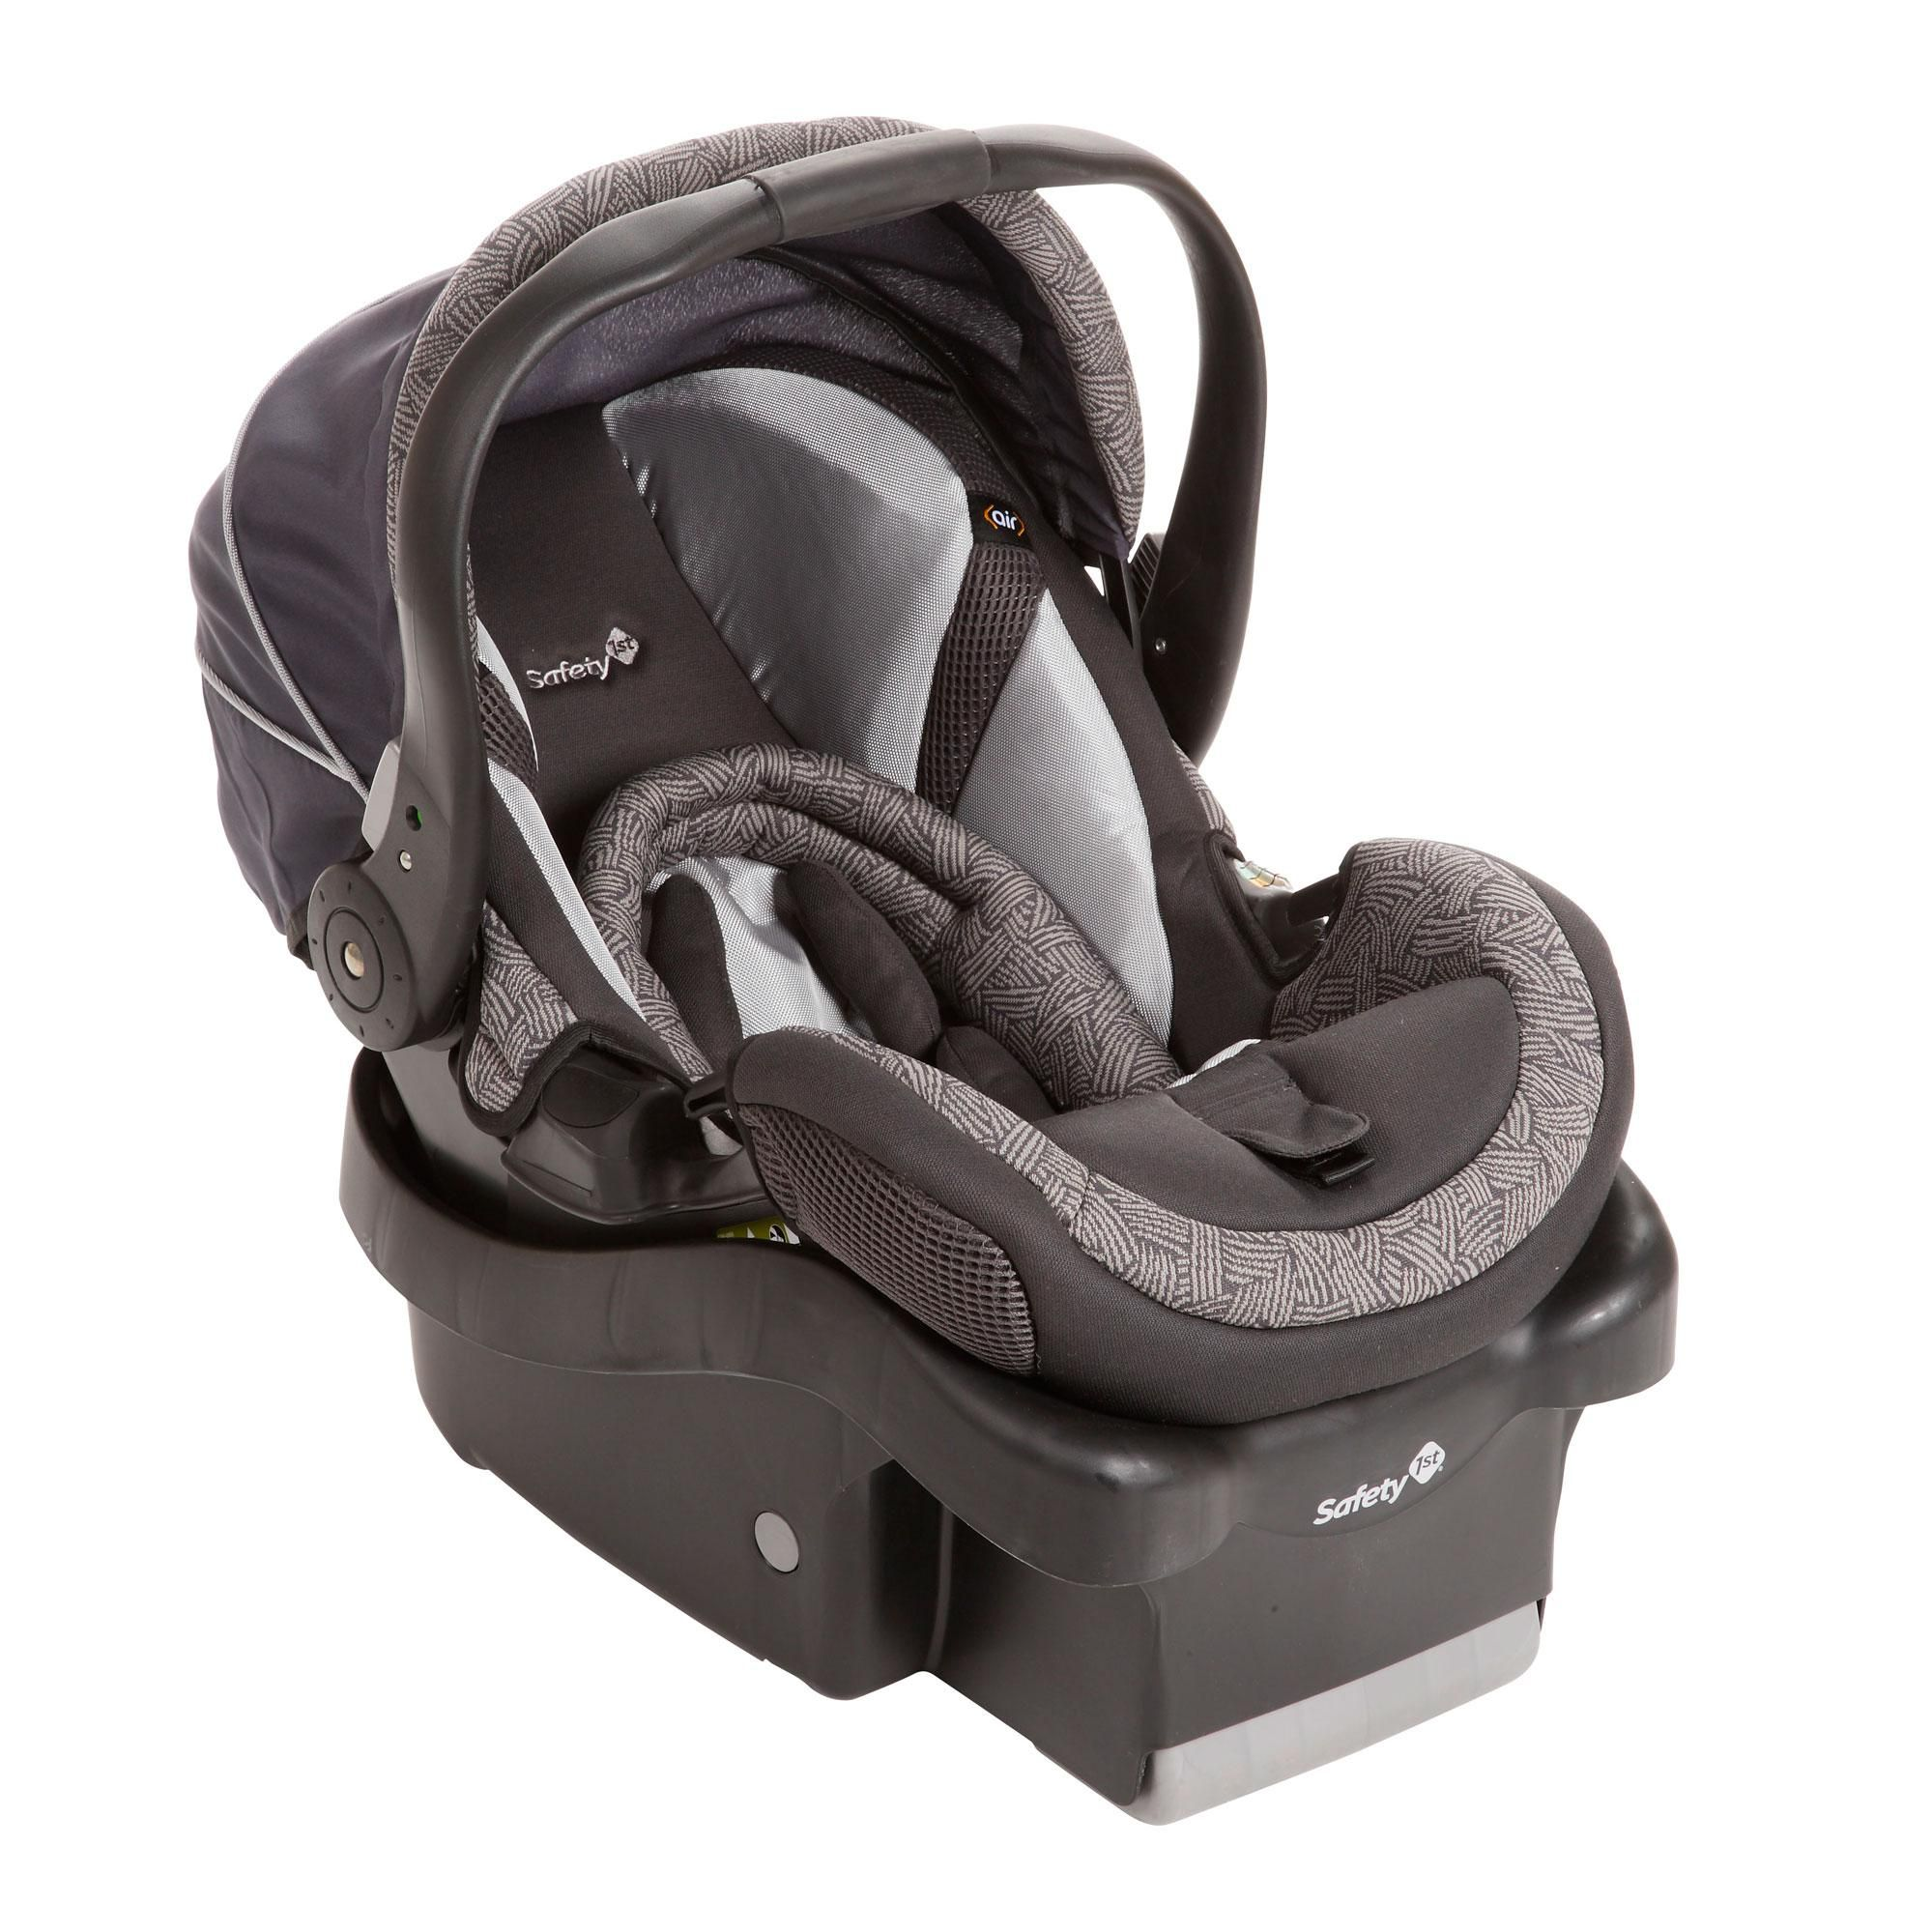 Safety 1st helps you to start your little one off on the